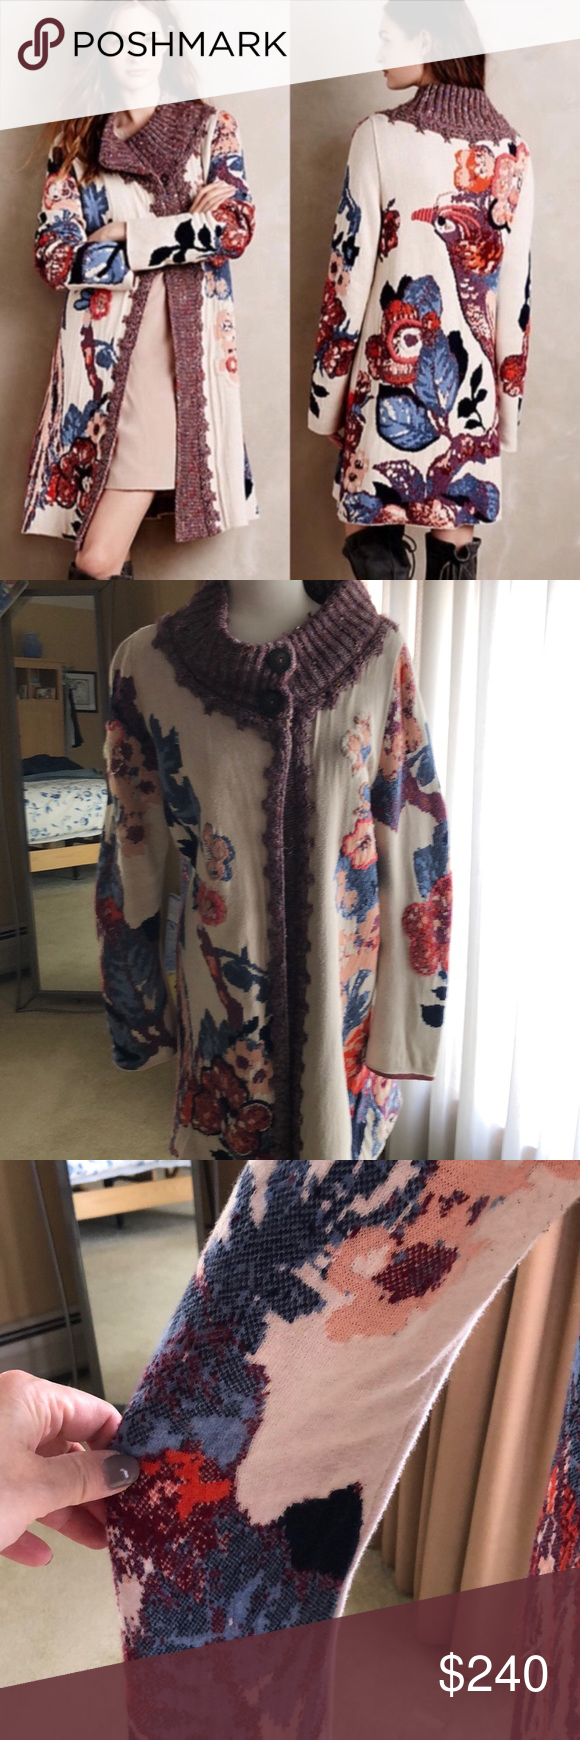 NEW Anthropologie Embroidered Foret Cardigan Sz S Sleeping